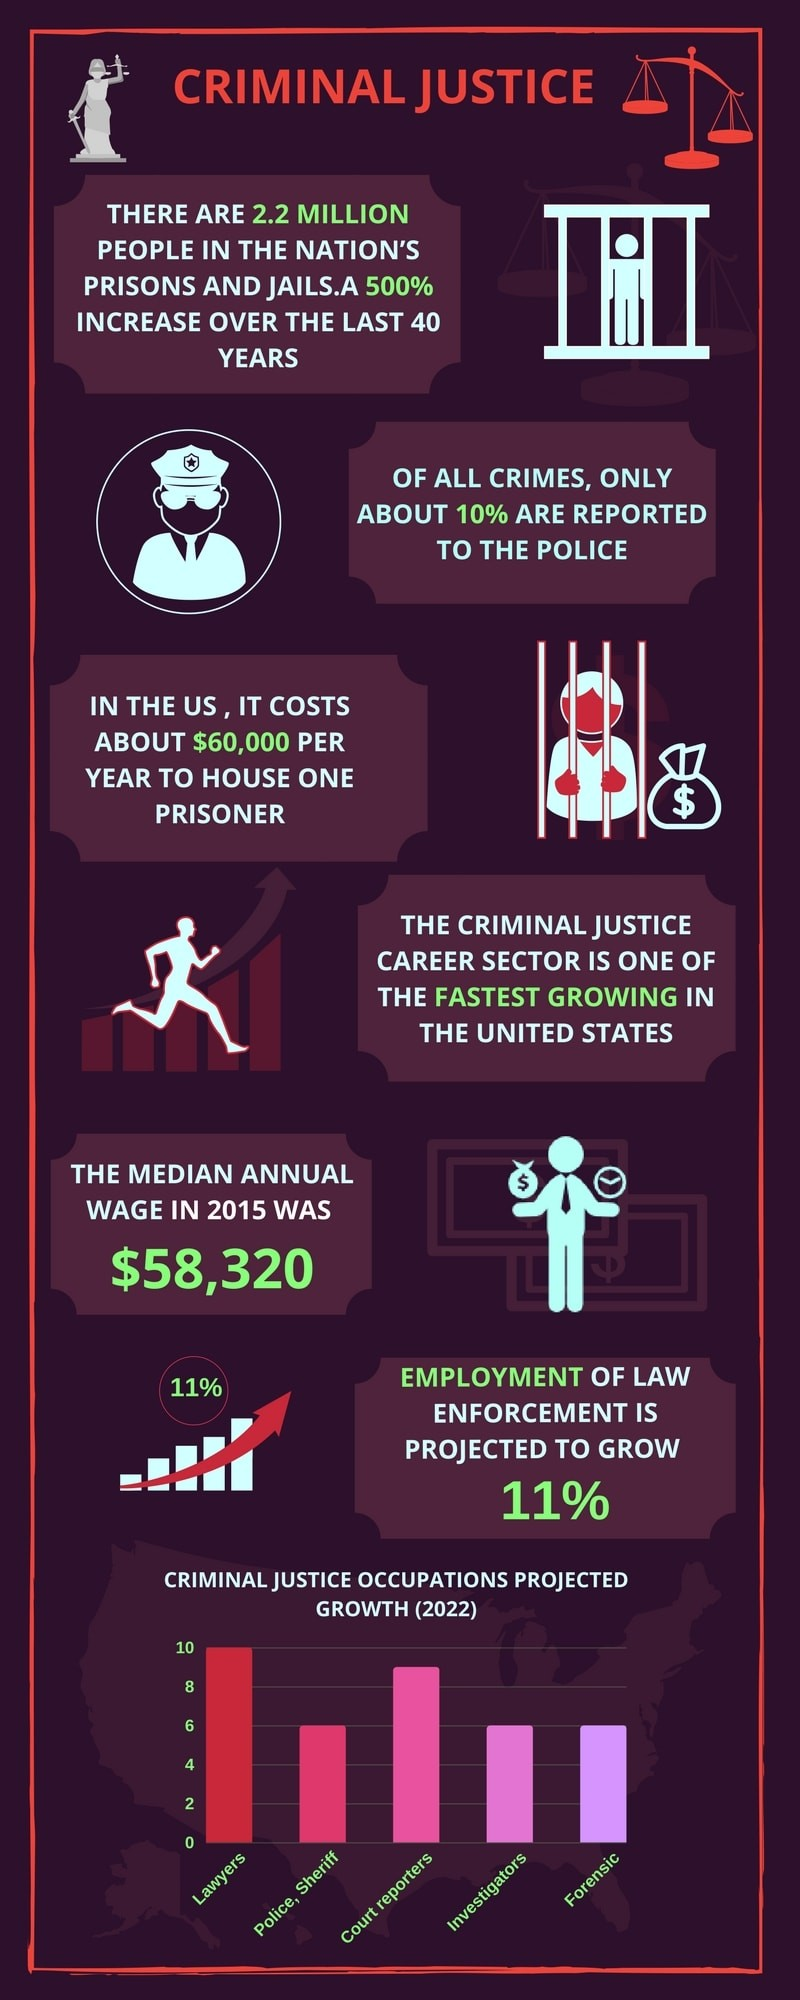 Criminal Justice Degree >> Criminal Justice Degree Requirements Tuition Cost Jobs